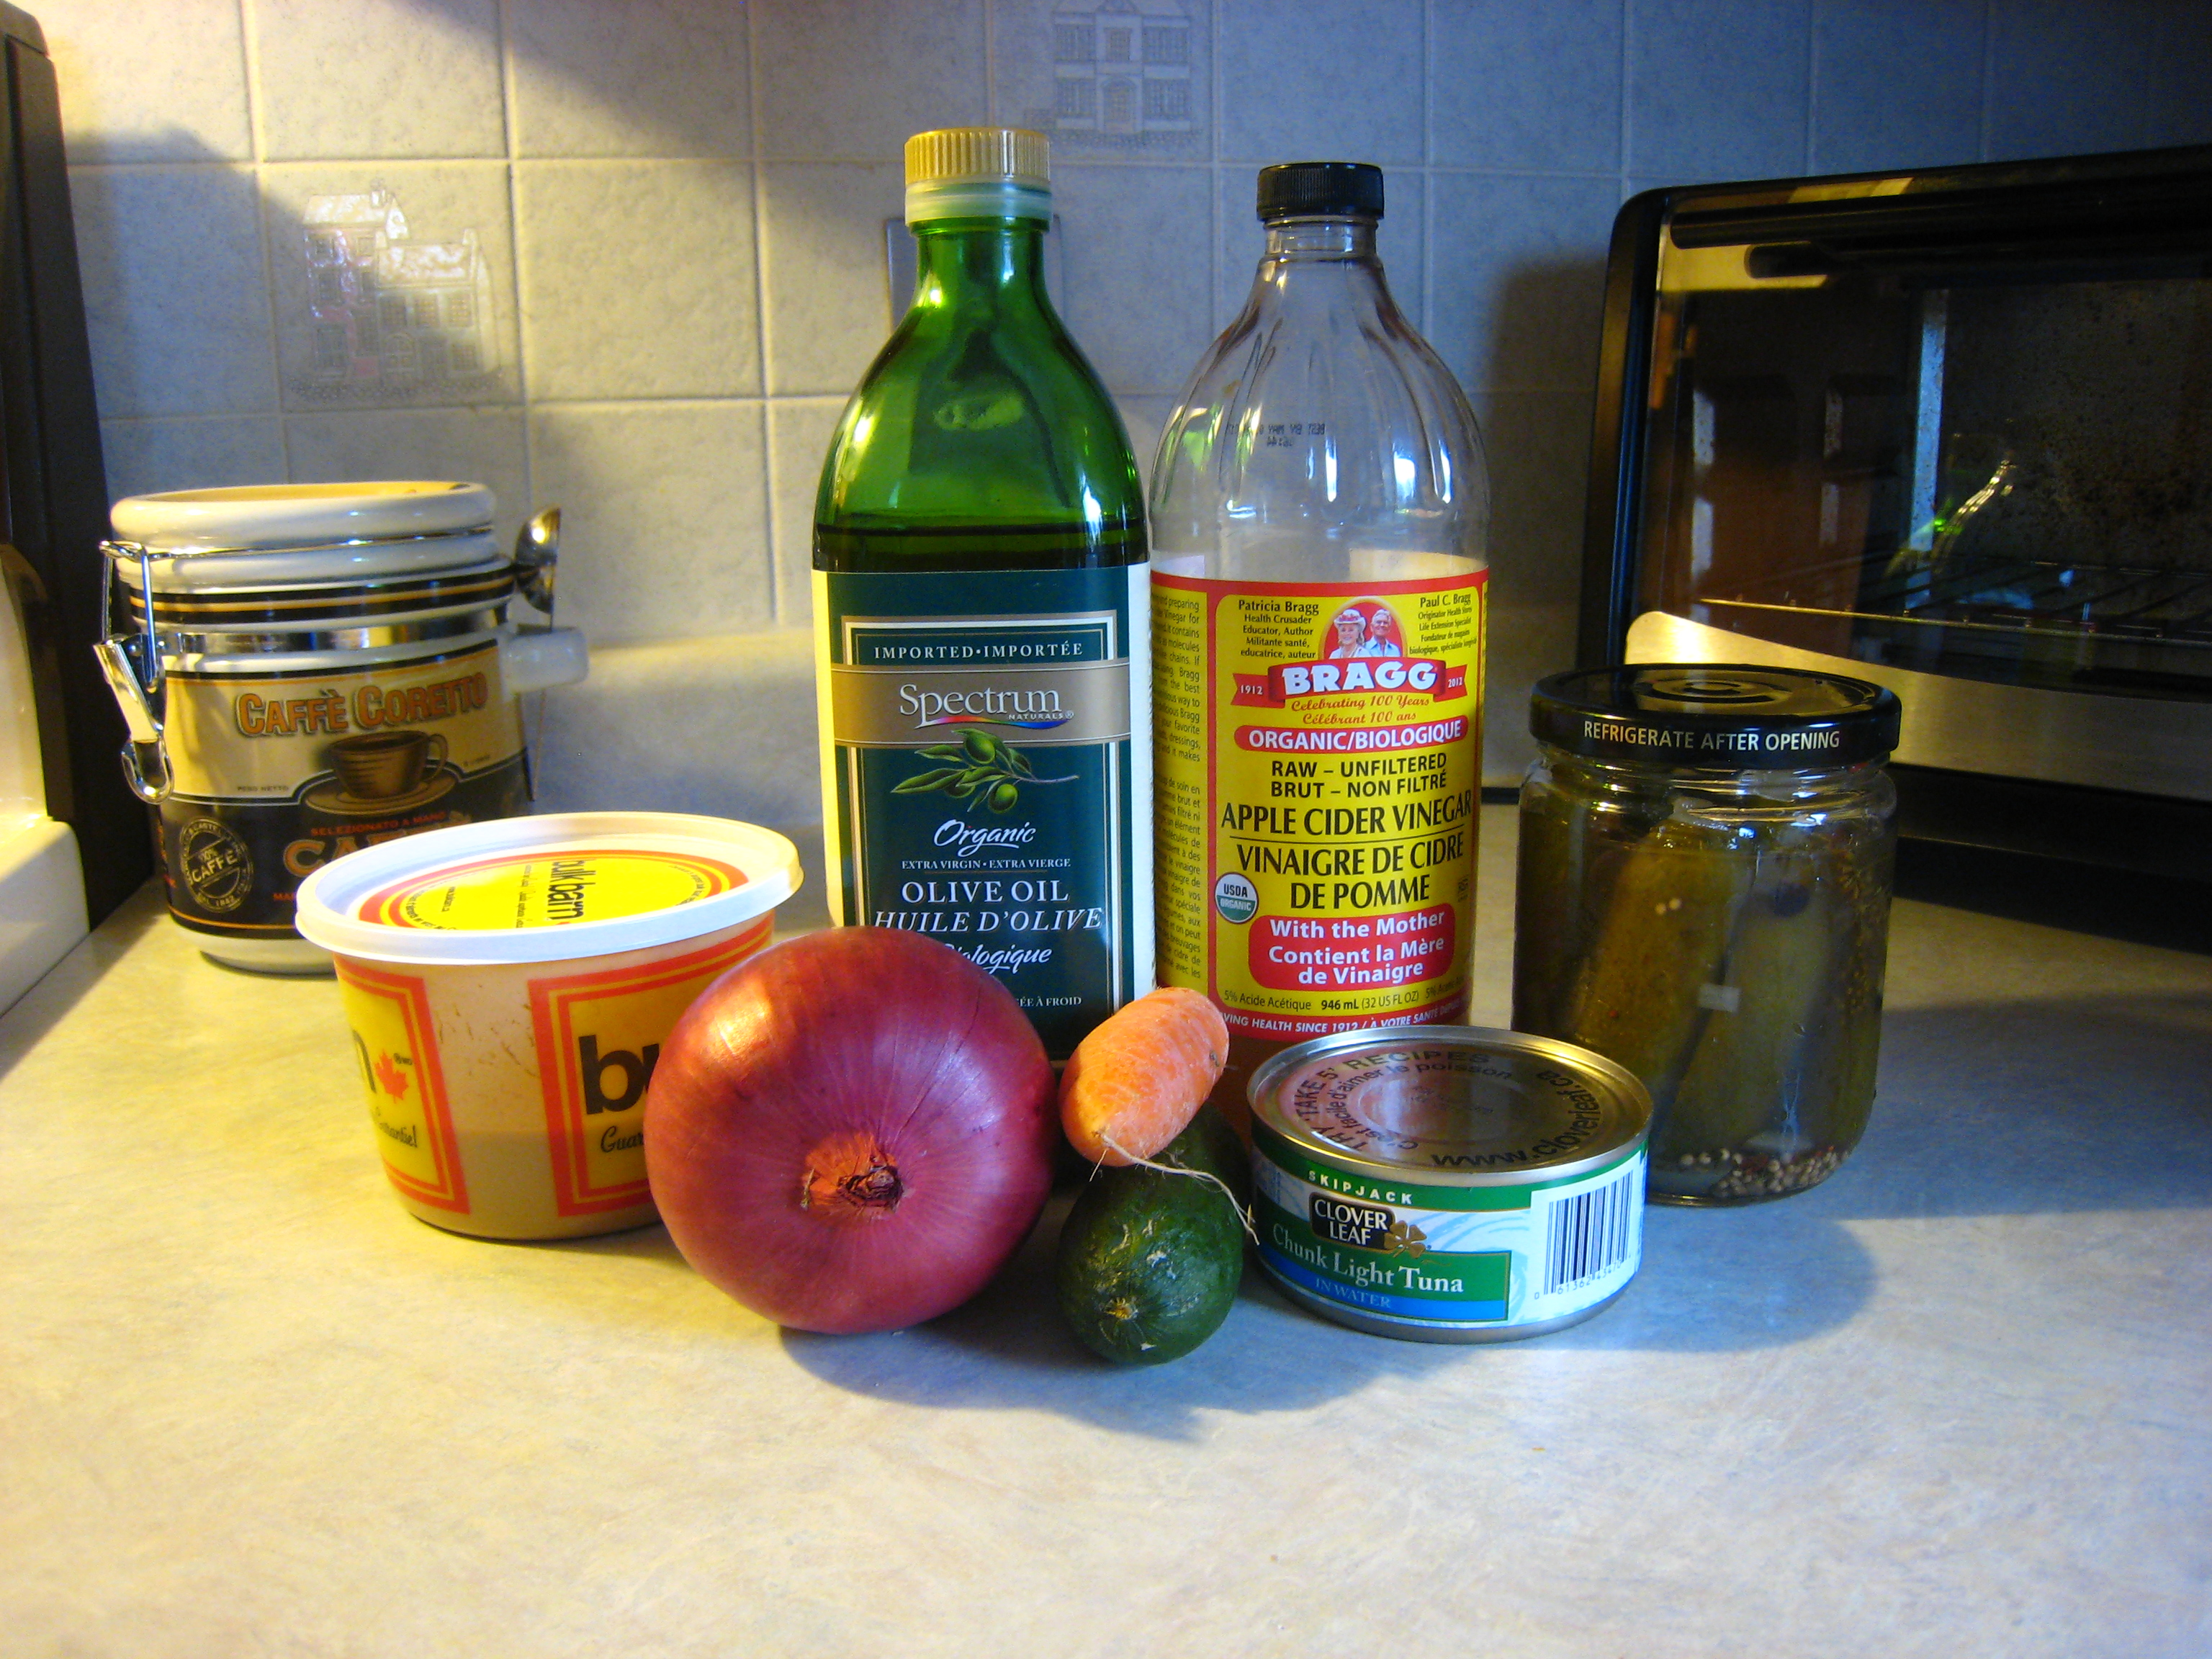 The ingredients we used for this Tuna Salad. Chopped celery, cucumber, & peppers are also a great addition.